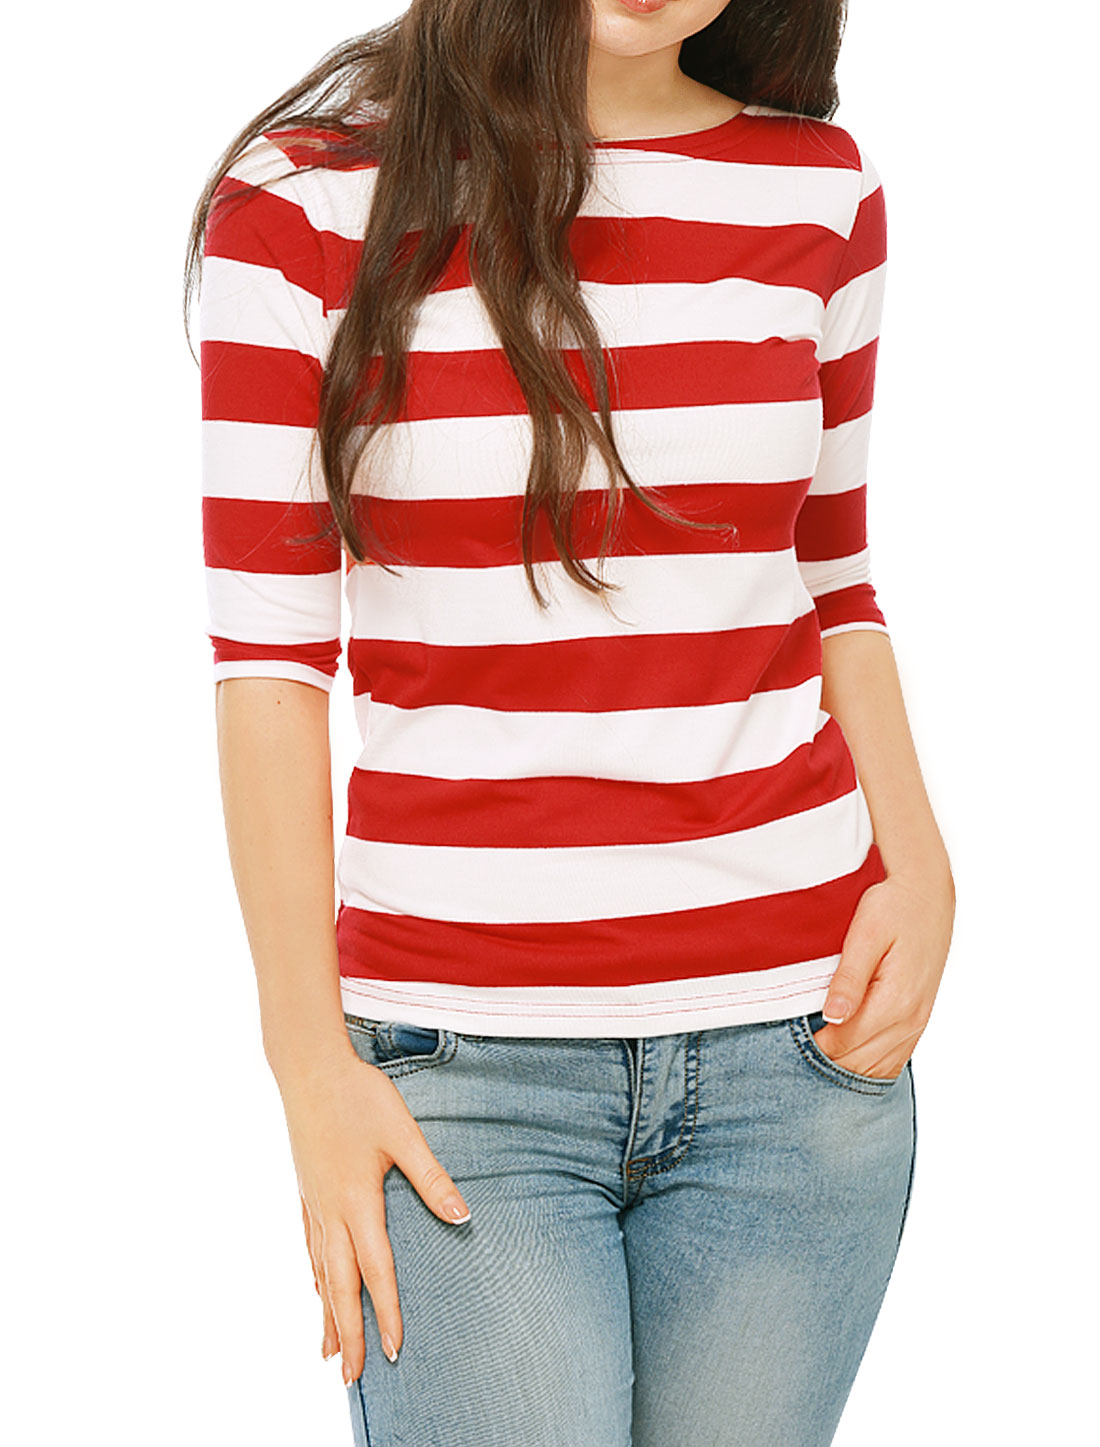 Women Half Sleeves Casual Horizontal Bar Striped Tee Red M